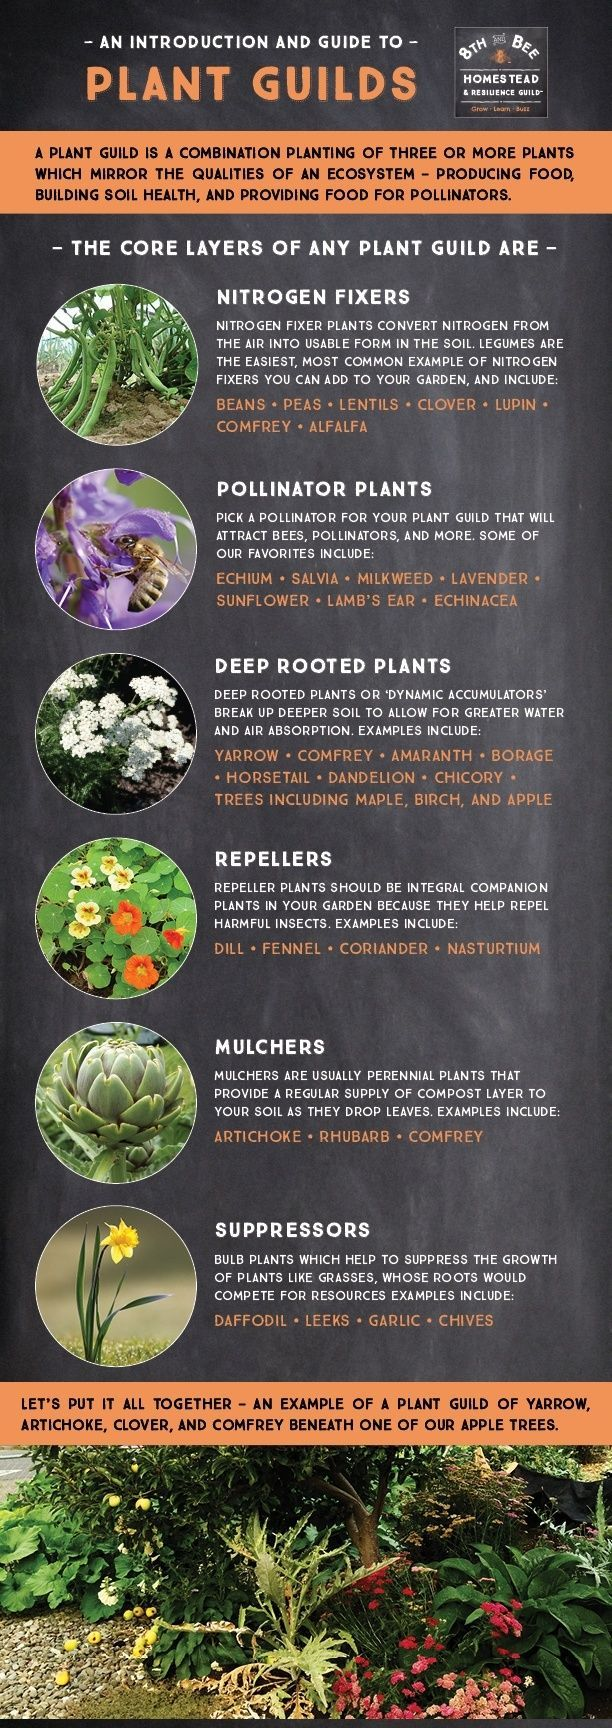 Permaculture plant guilds combine three or more plants to mirror an ecosystem — producing food, building soil health, and providing food for pollinators. To learn more permaculture principles, check out out Tierra: Online course.